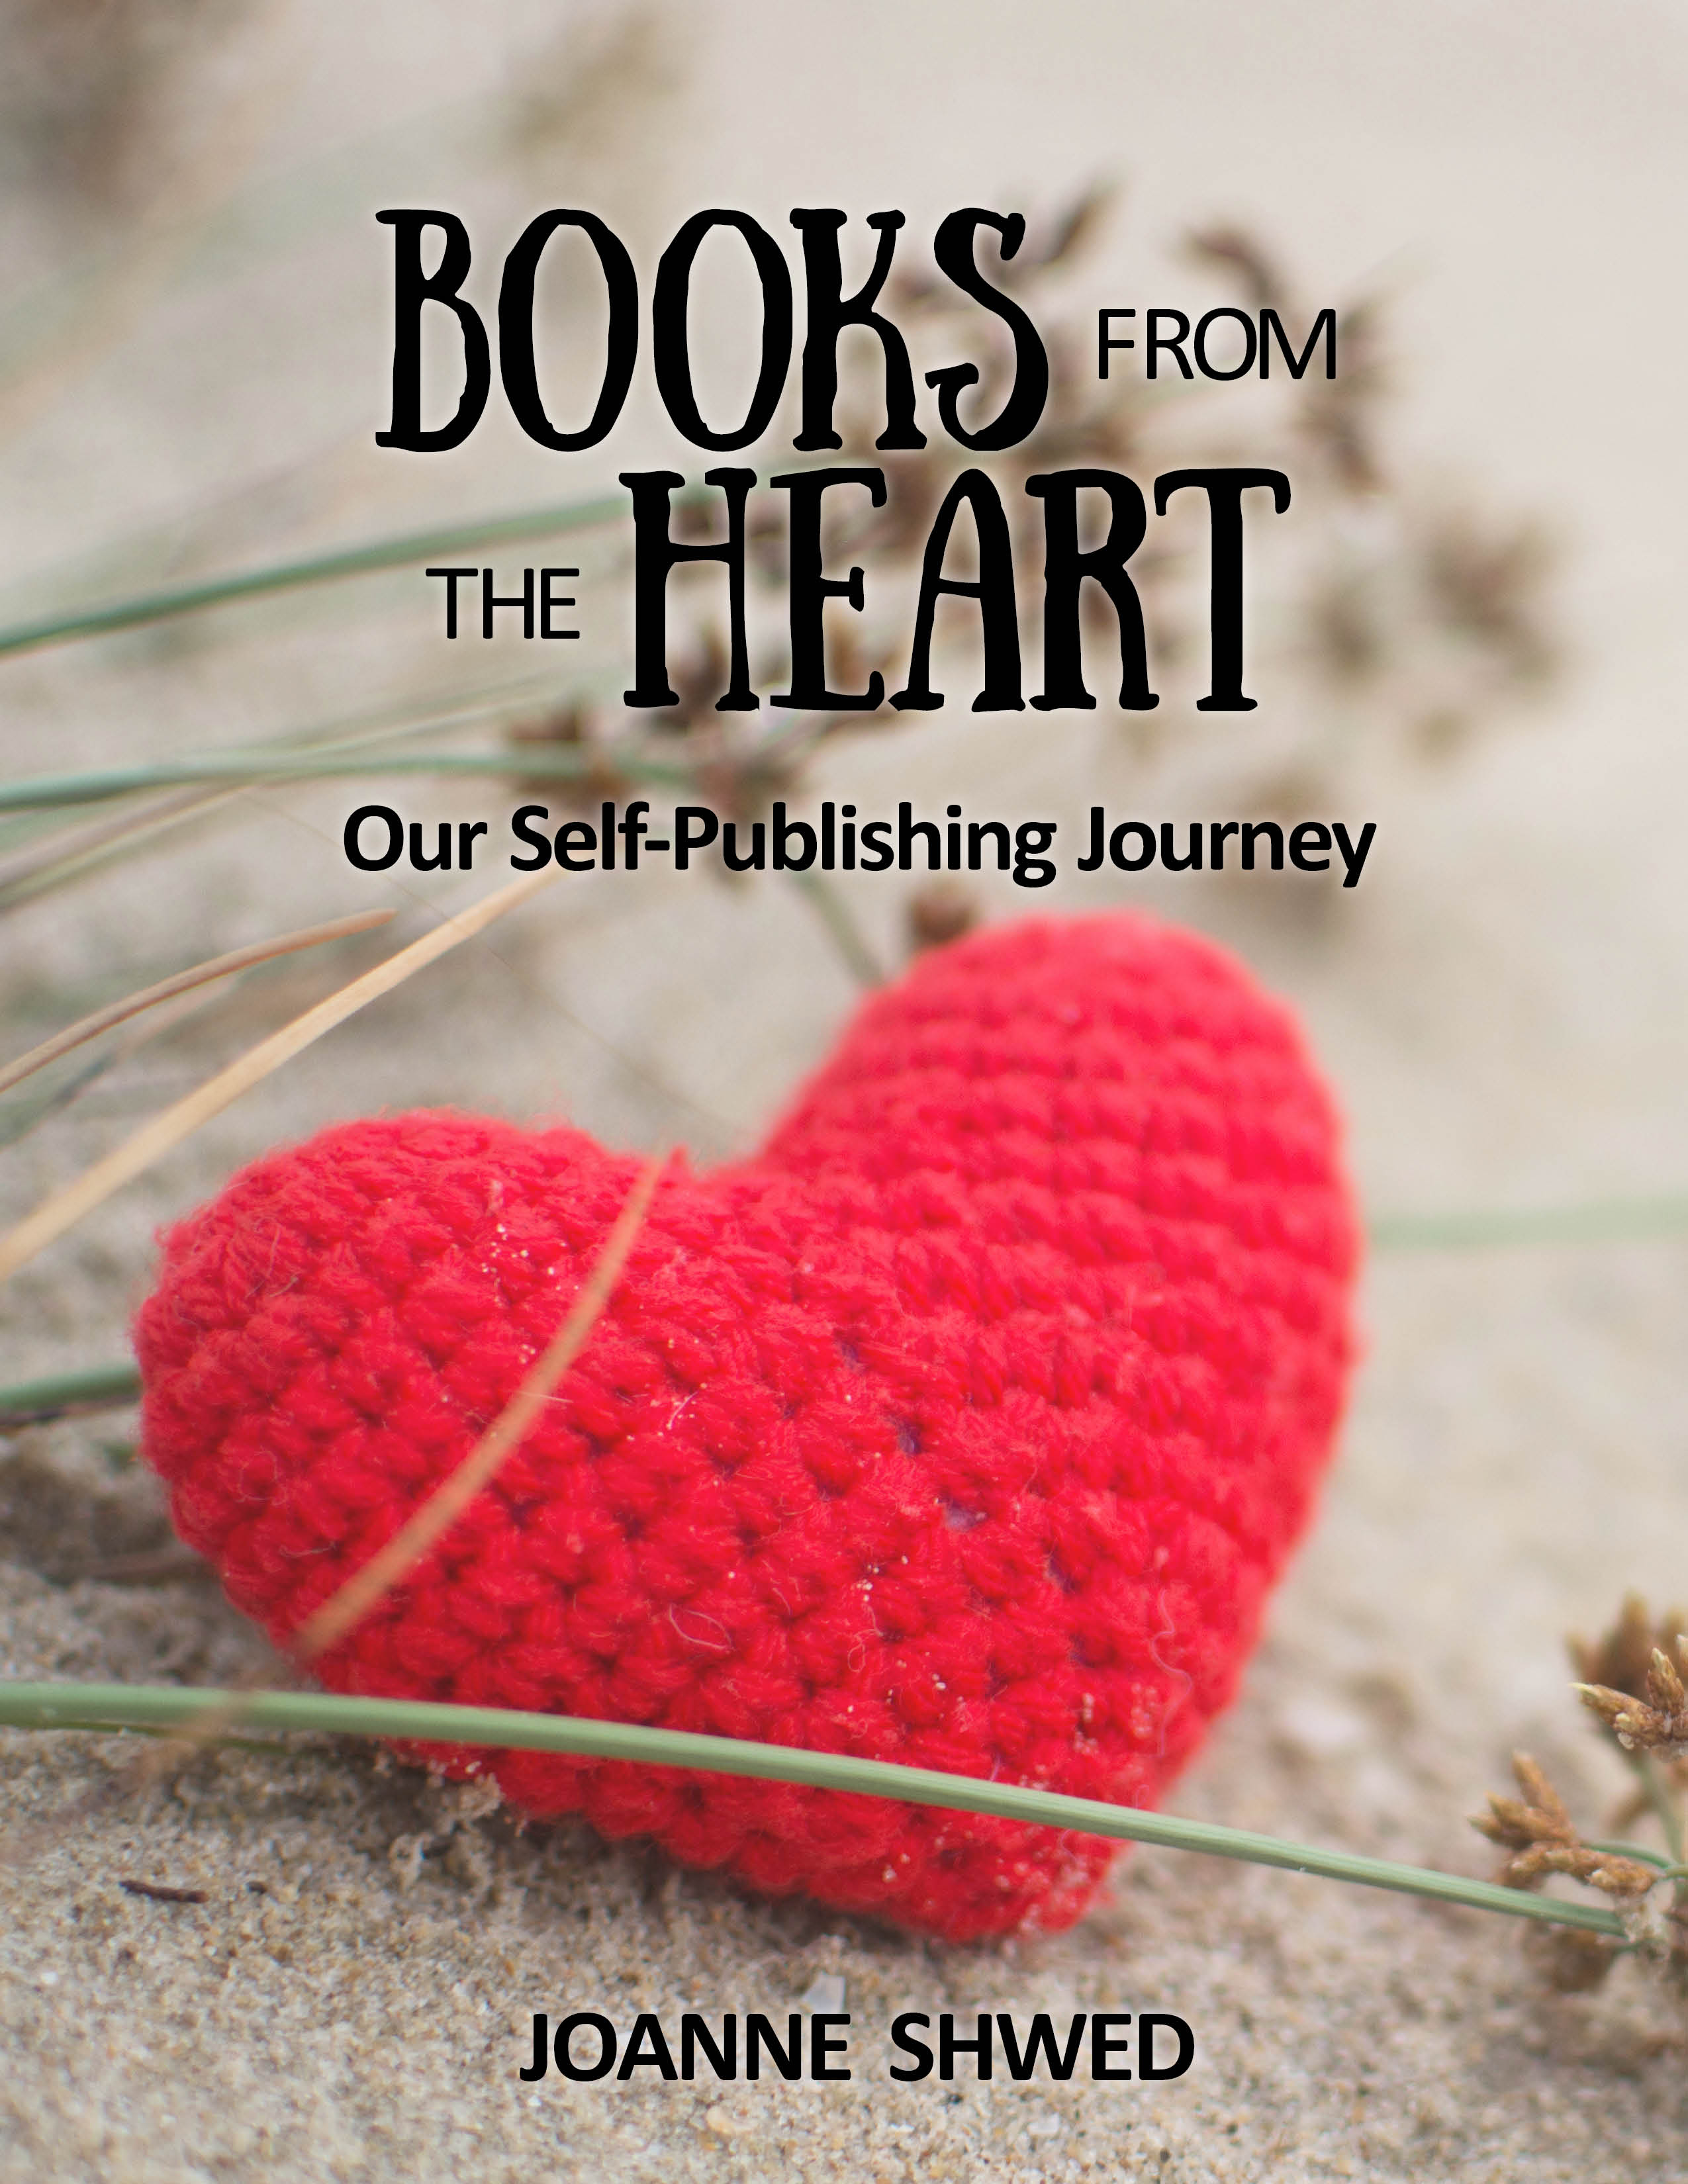 Books from the Heart: Our Self-Publishing Journey